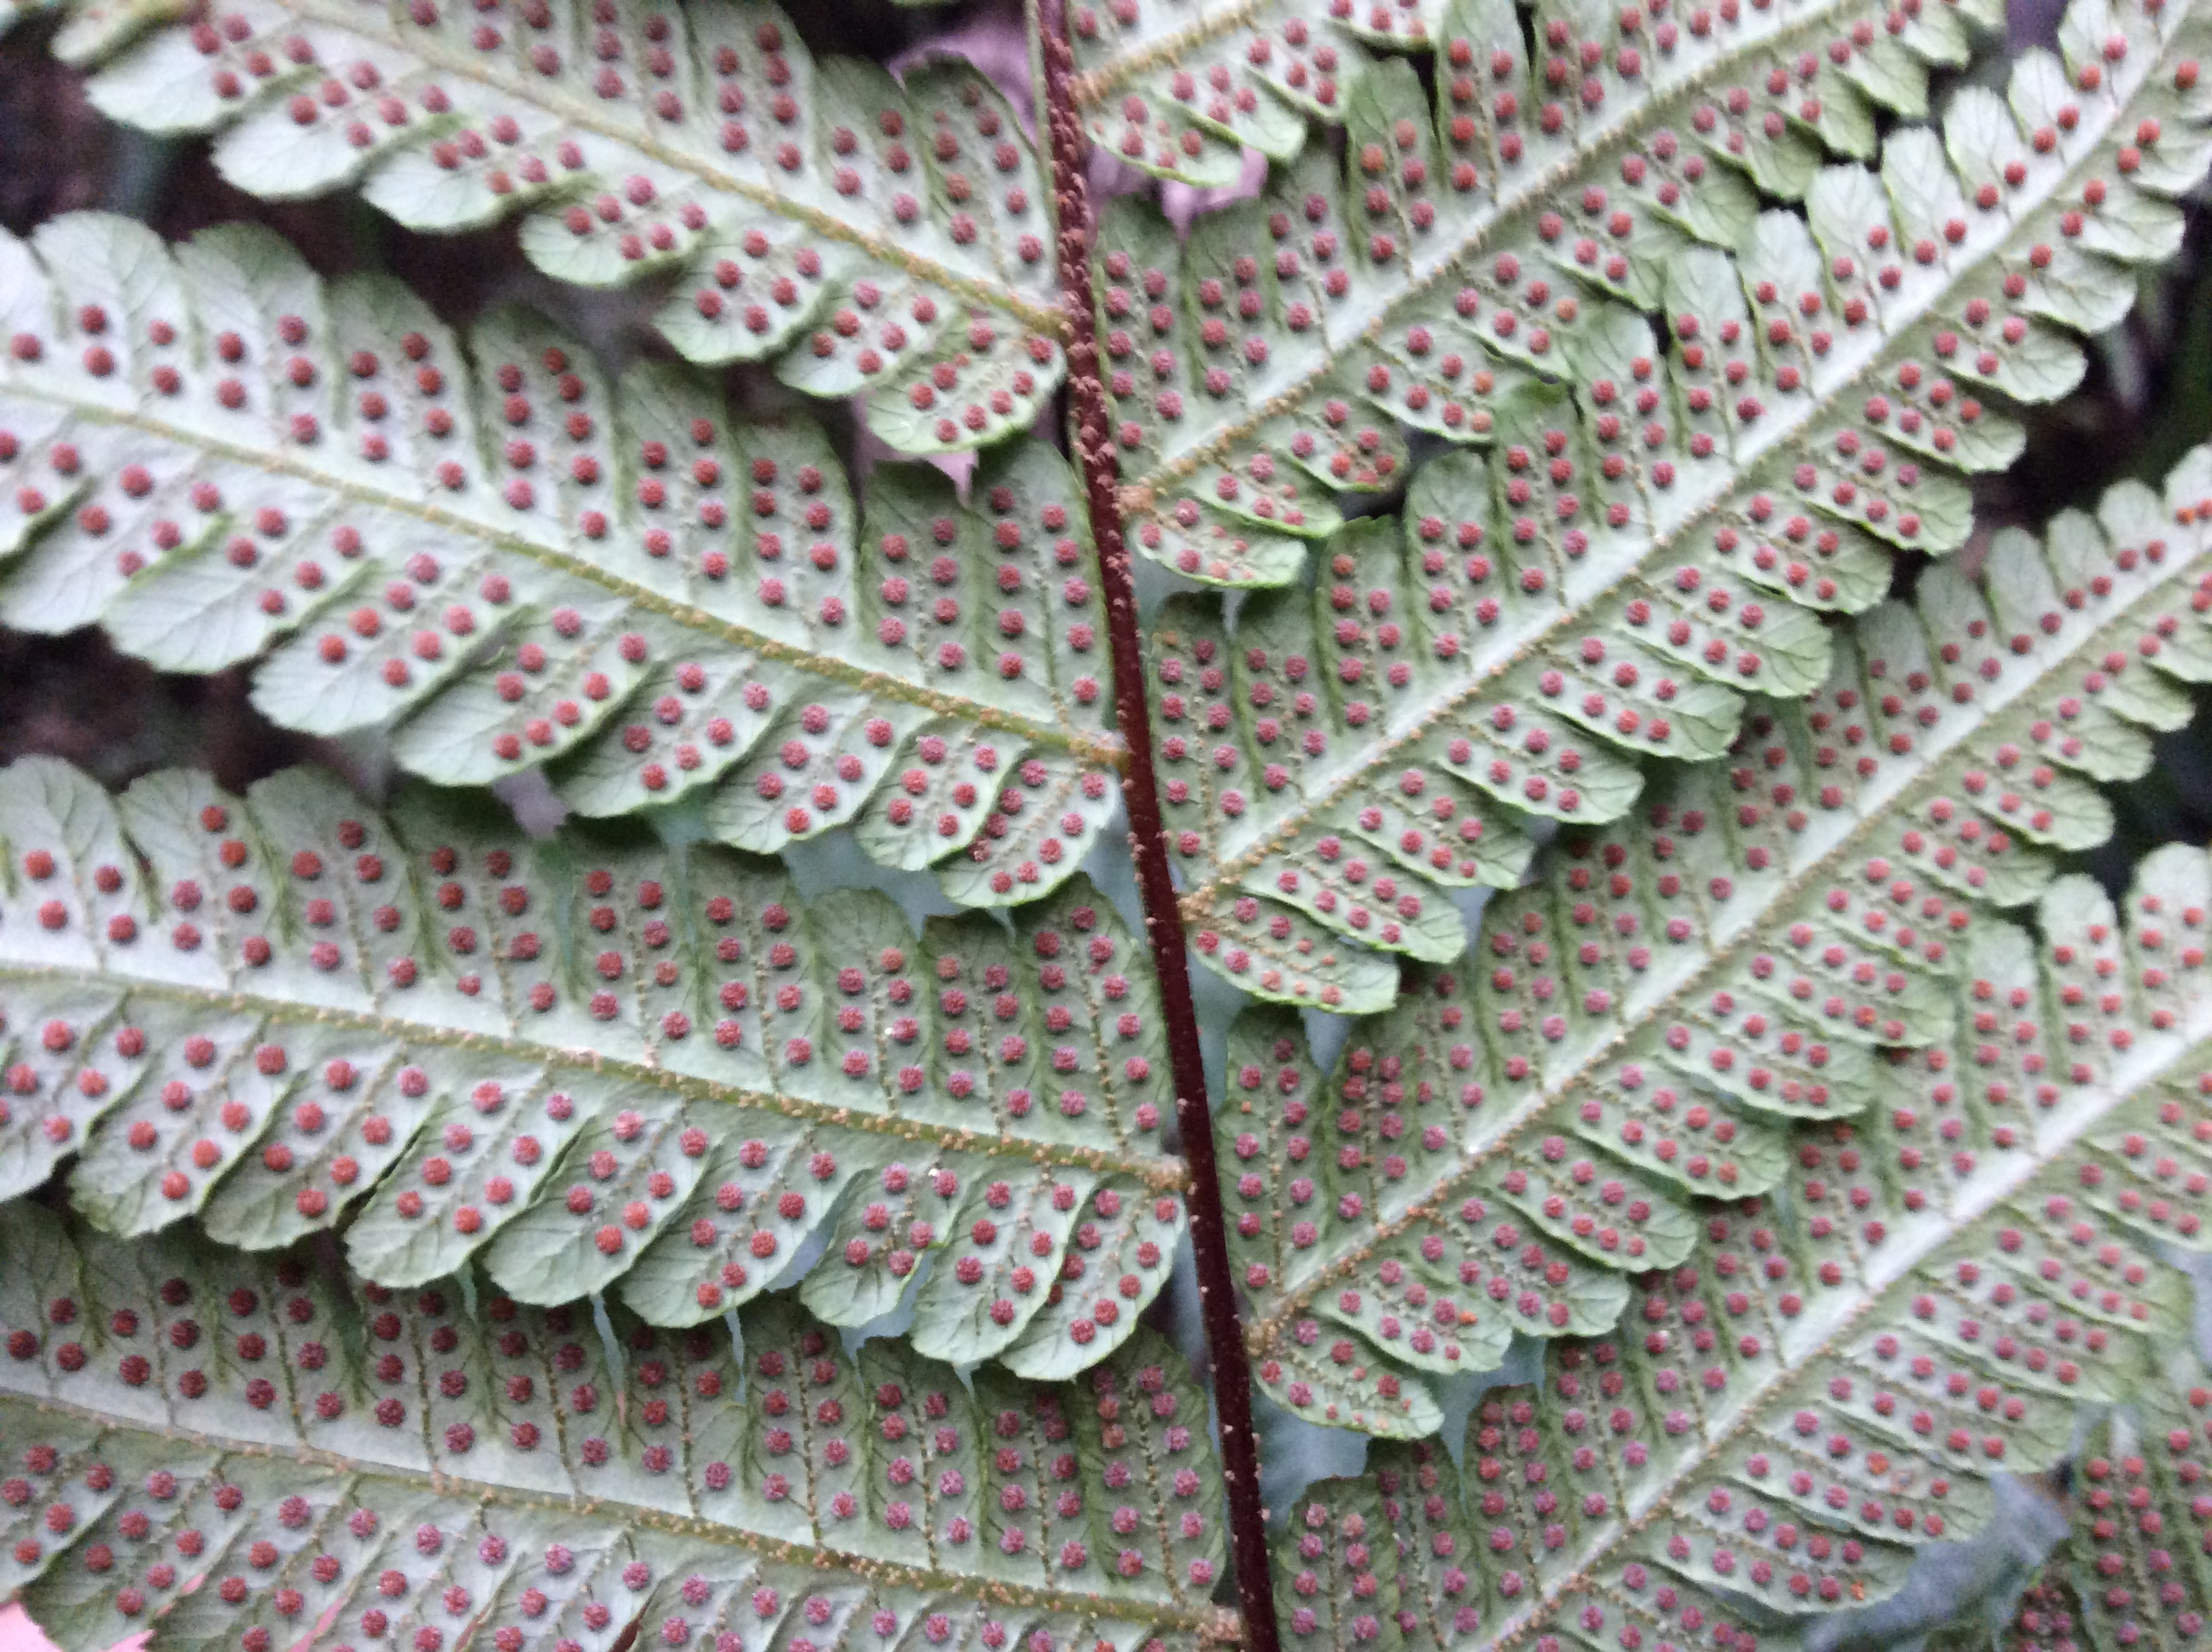 Underside of fern showing seeds